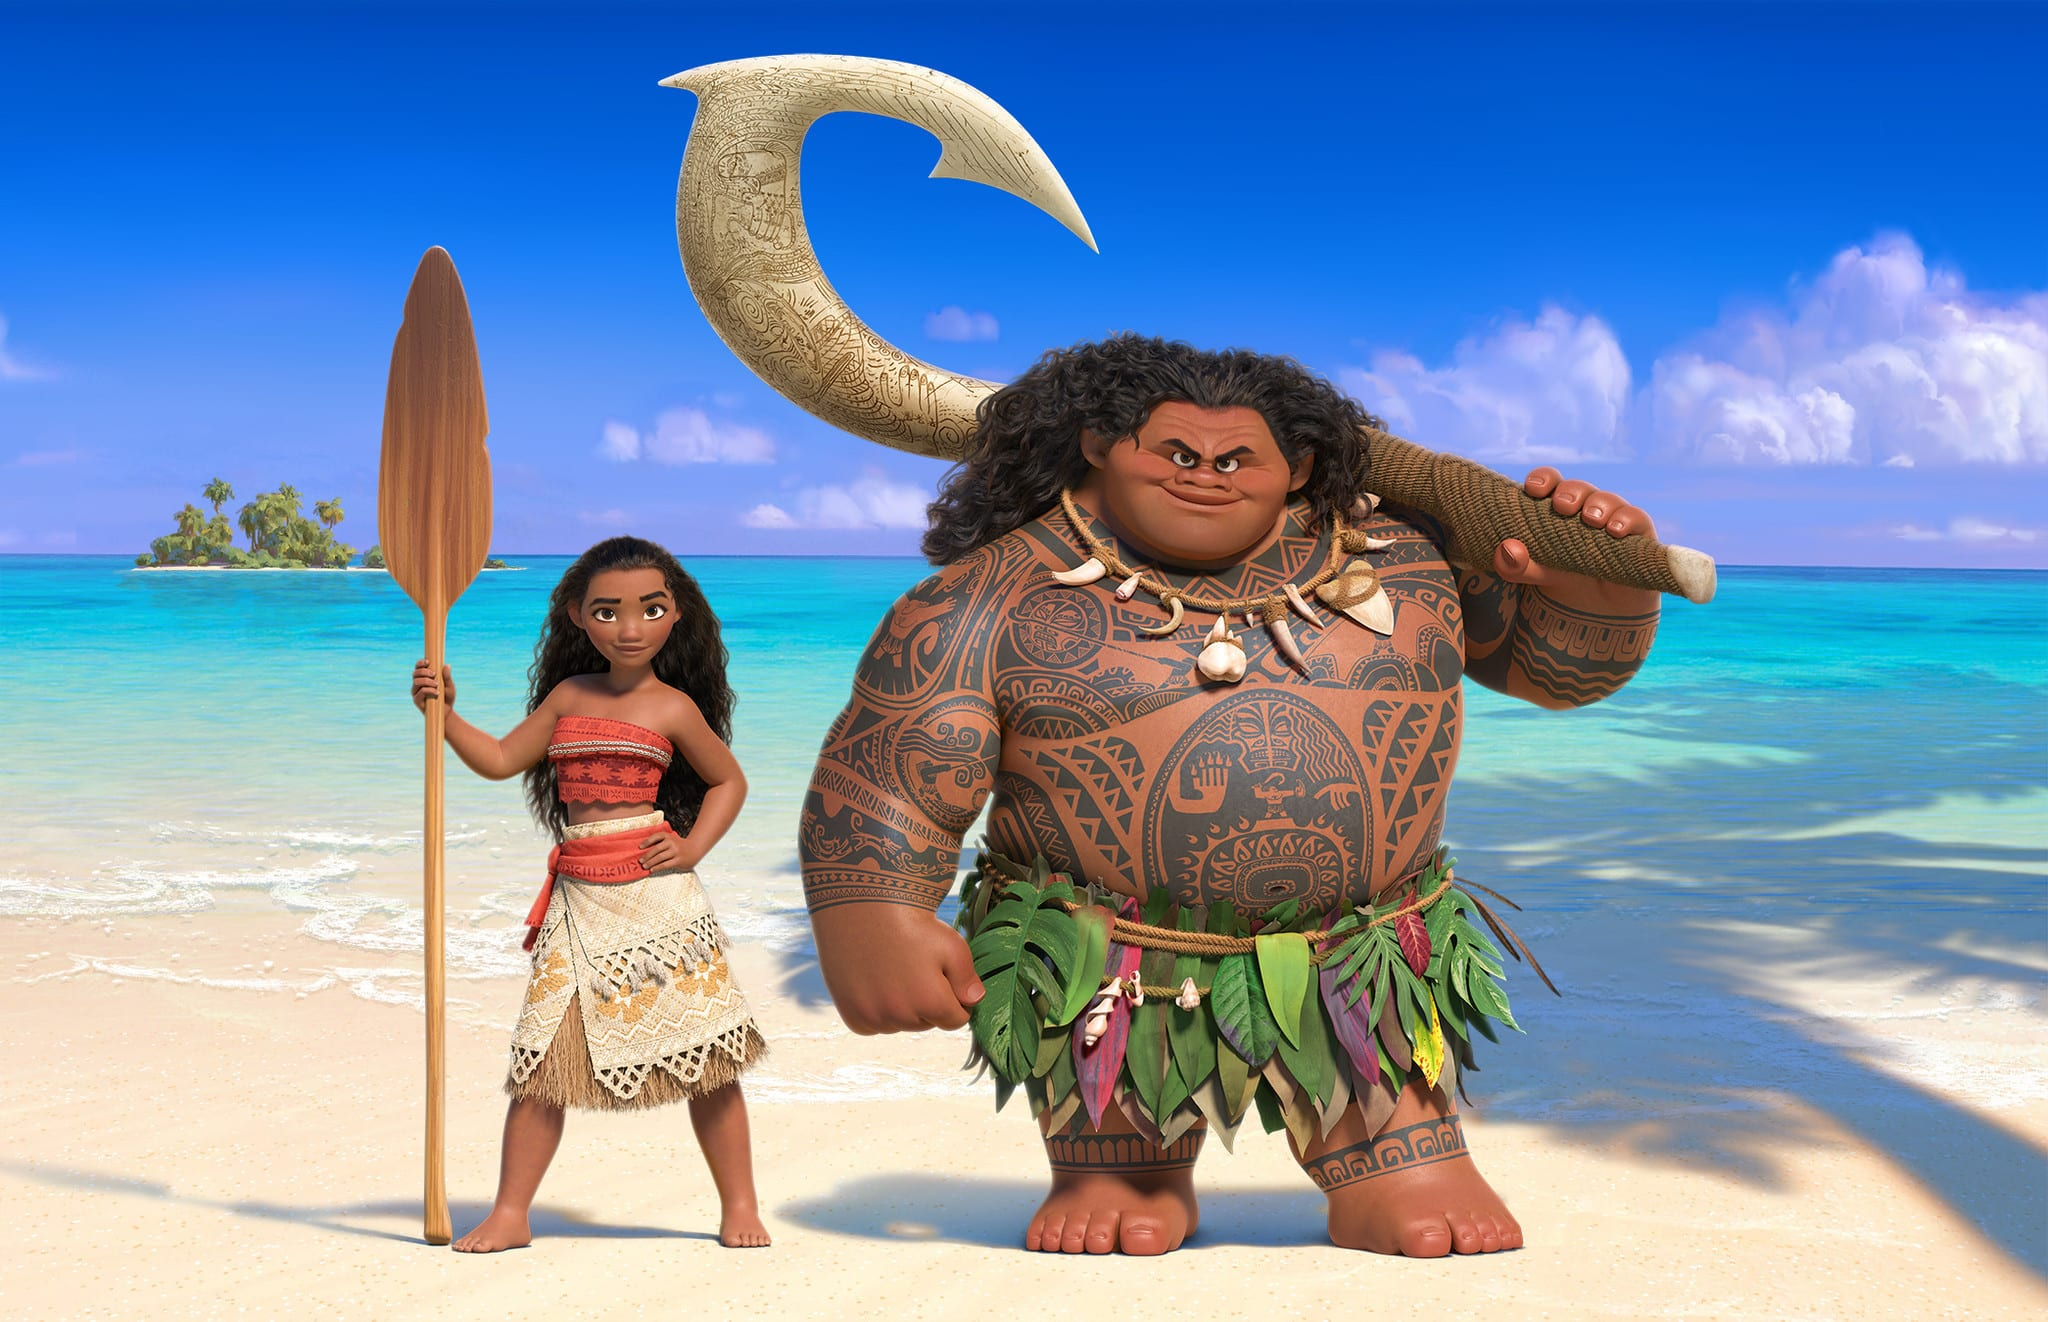 la-et-hc-disney-new-princess-moana-20151007